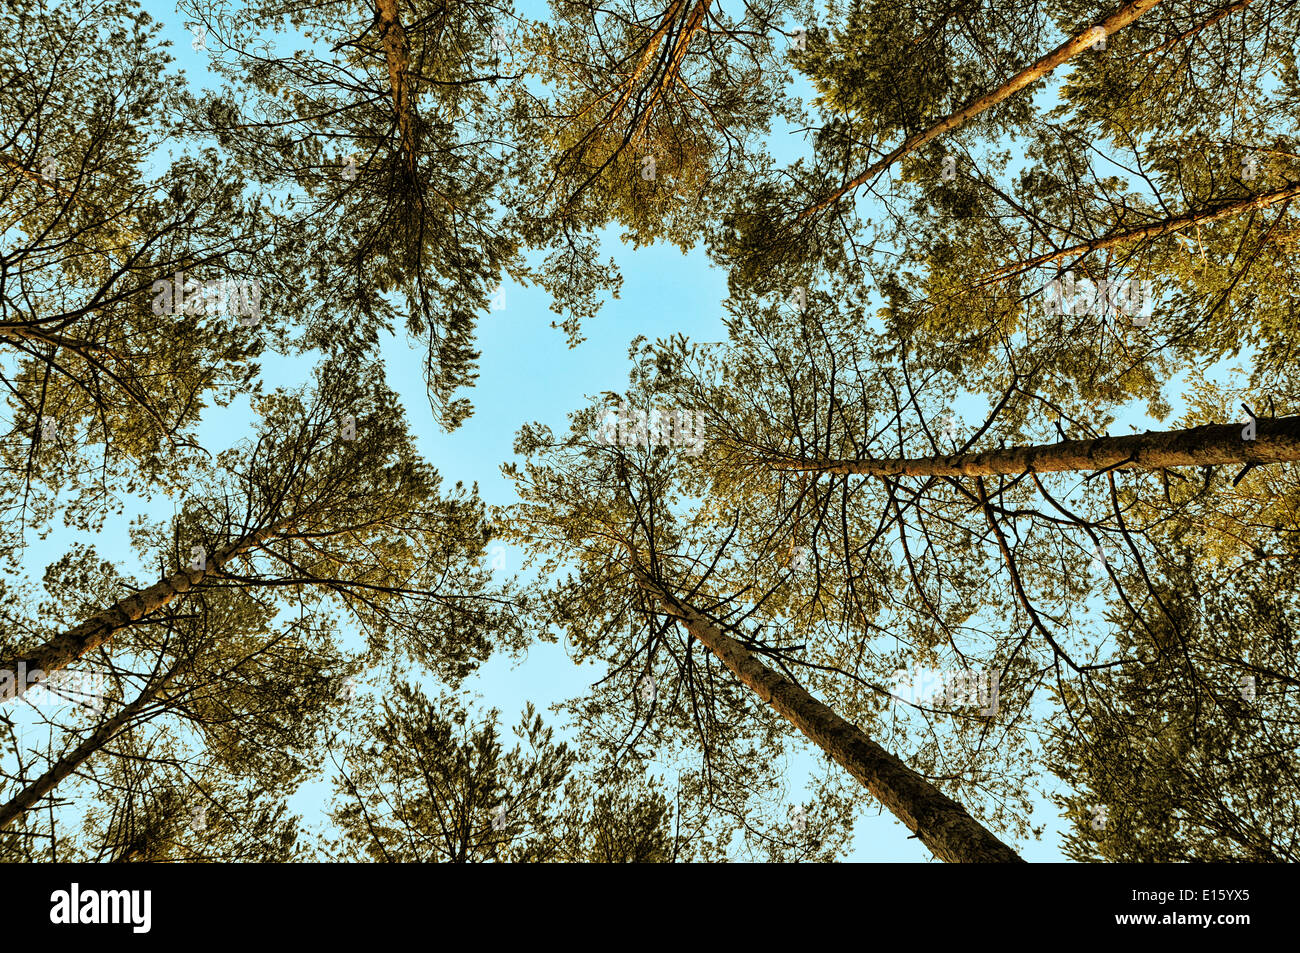 low angle shot of trees against blue sky - Stock Image